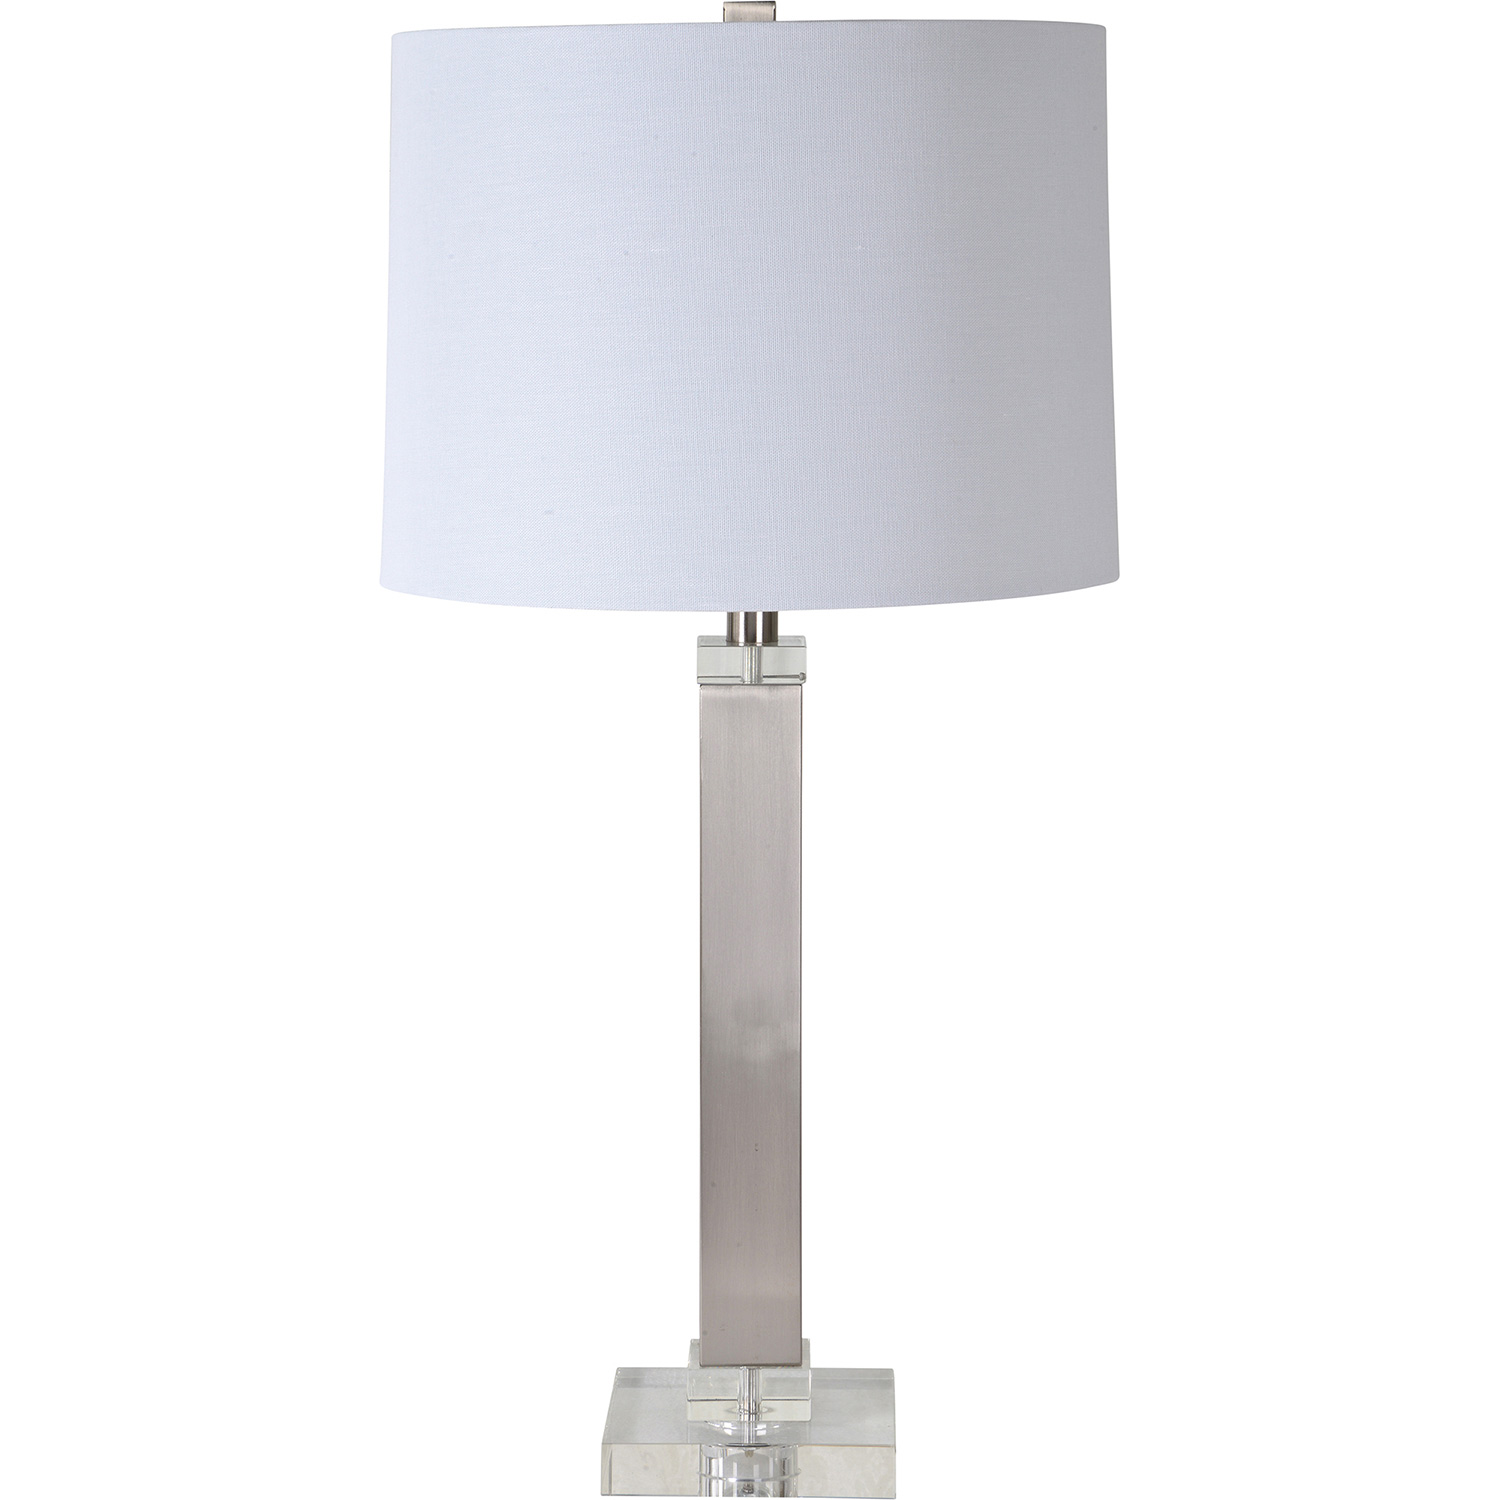 Ren-Wil Sauline Table Lamp - Clear